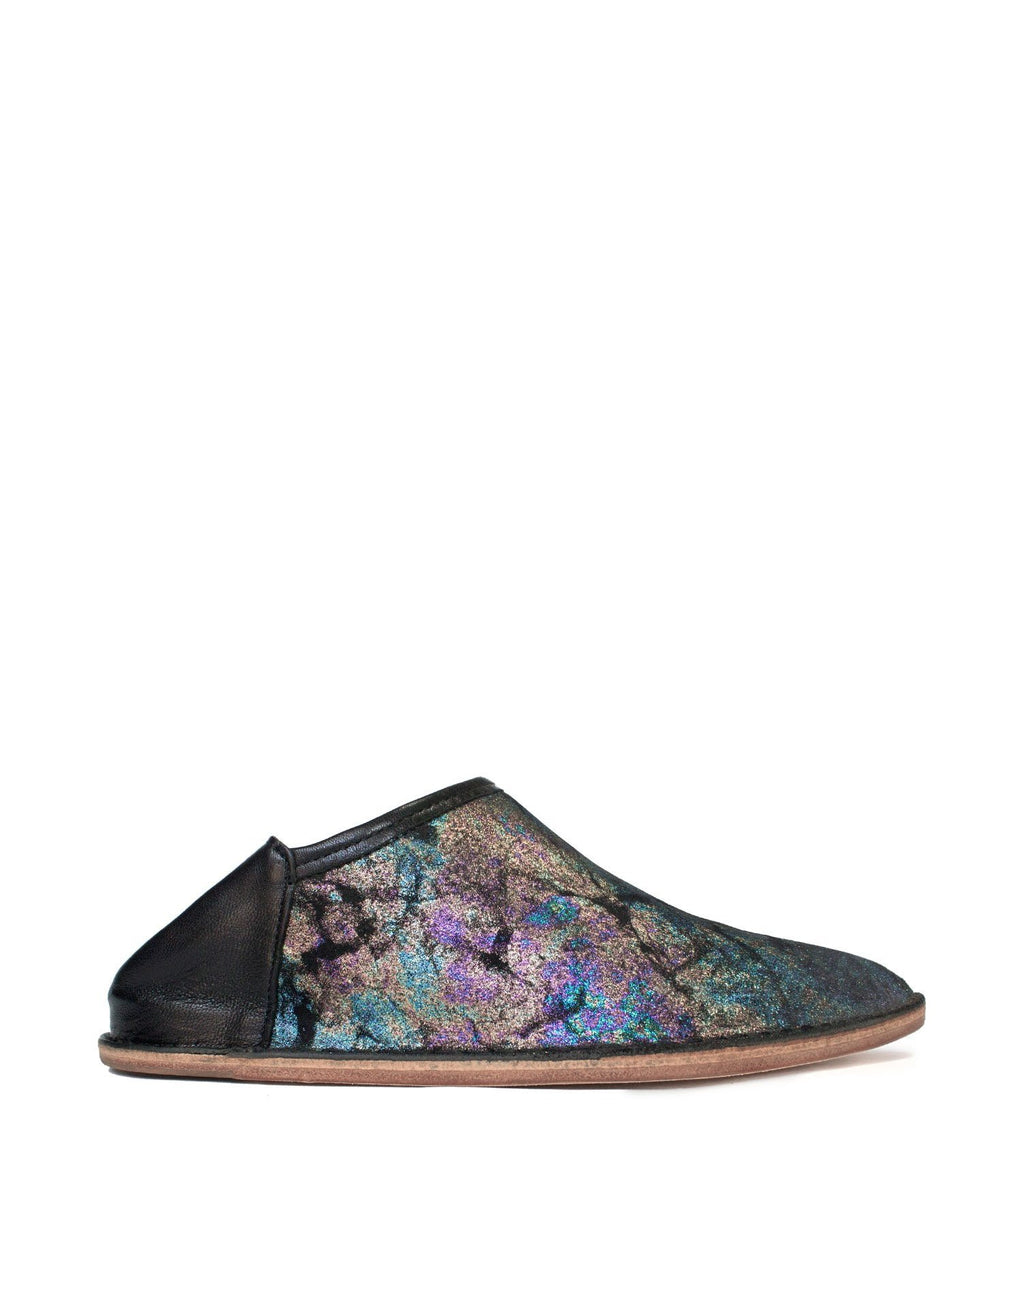 Iridescent metallic finished suede slip on slipper shoe by designer Georgina Goodman